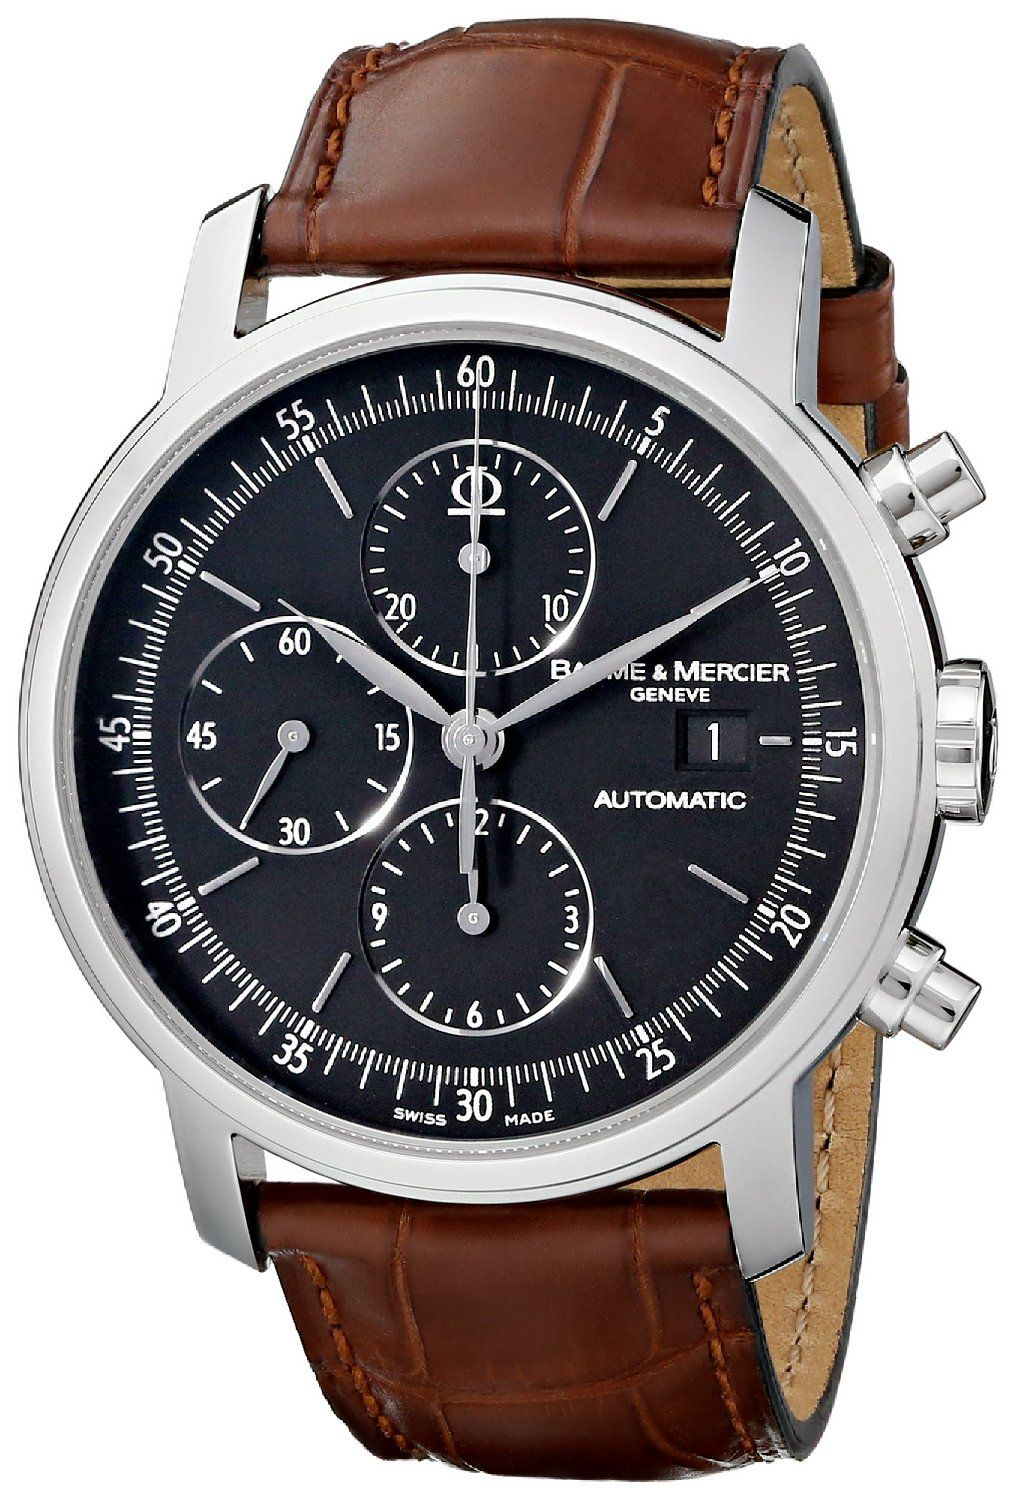 0c155b8bcb4 Pursuing a passionate vocation since Baume   Mercier has a proud record of  visionary innovations and producing watches that consistently embody an  ideal of ...